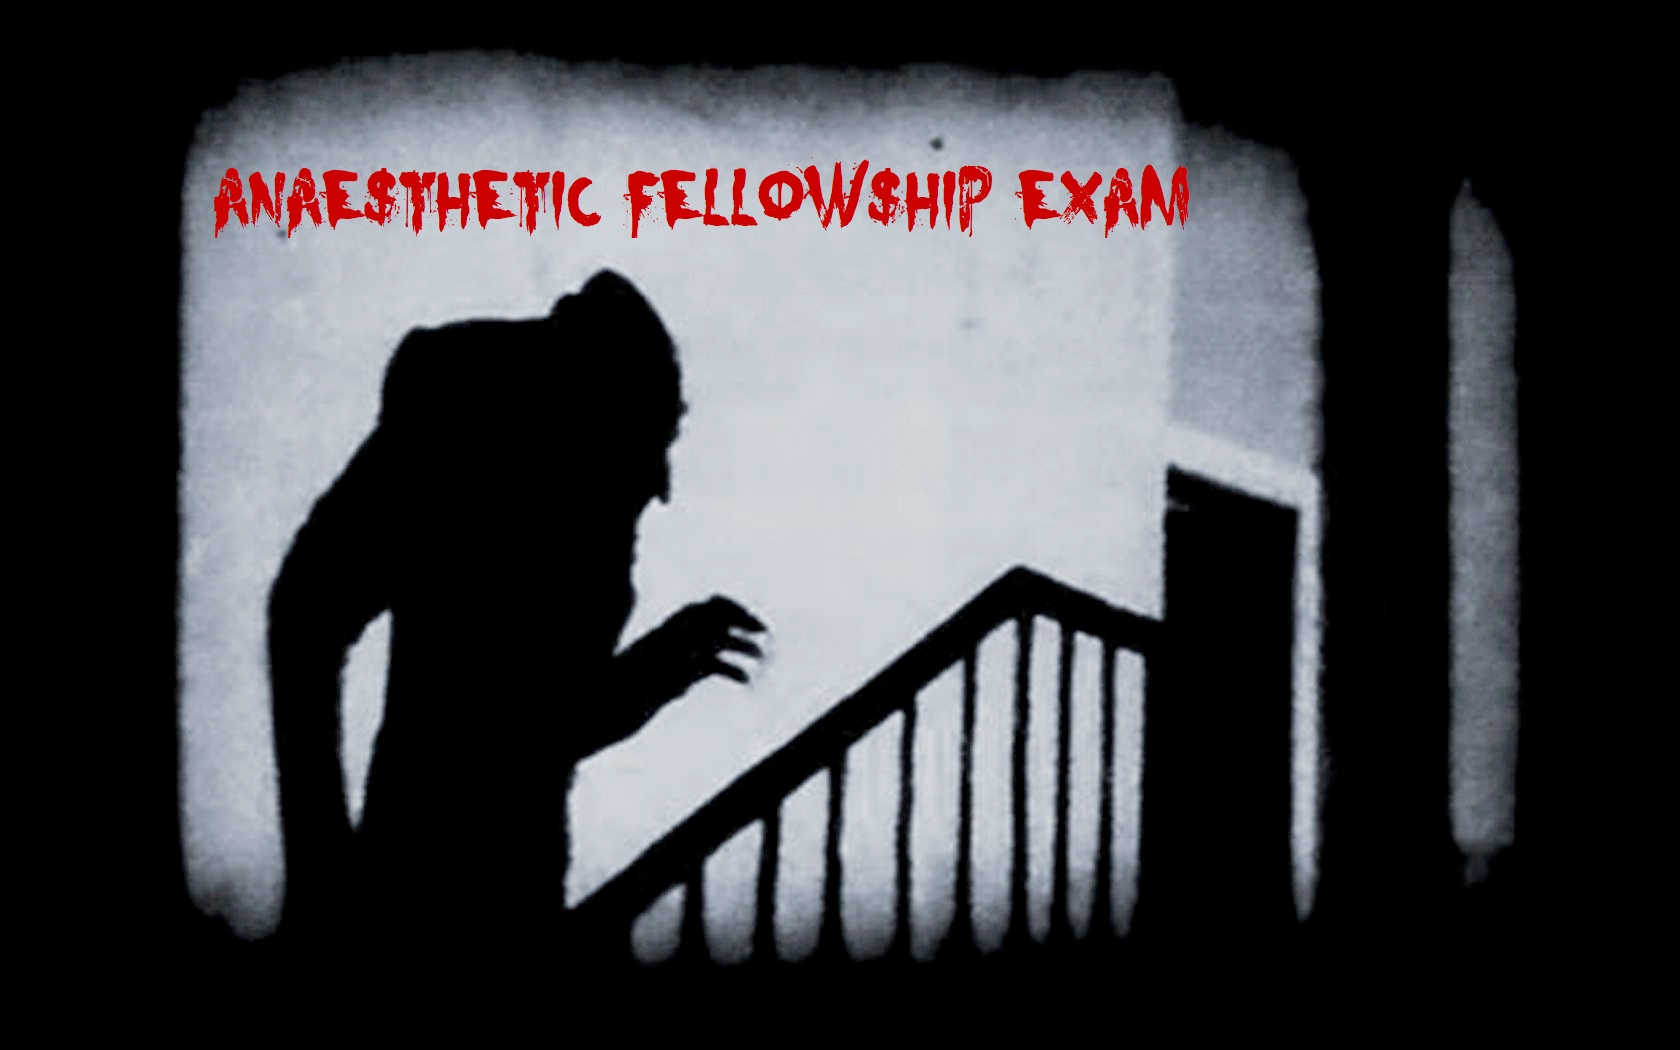 Anaesthetic Fellowship Exam Notes and Past Papers